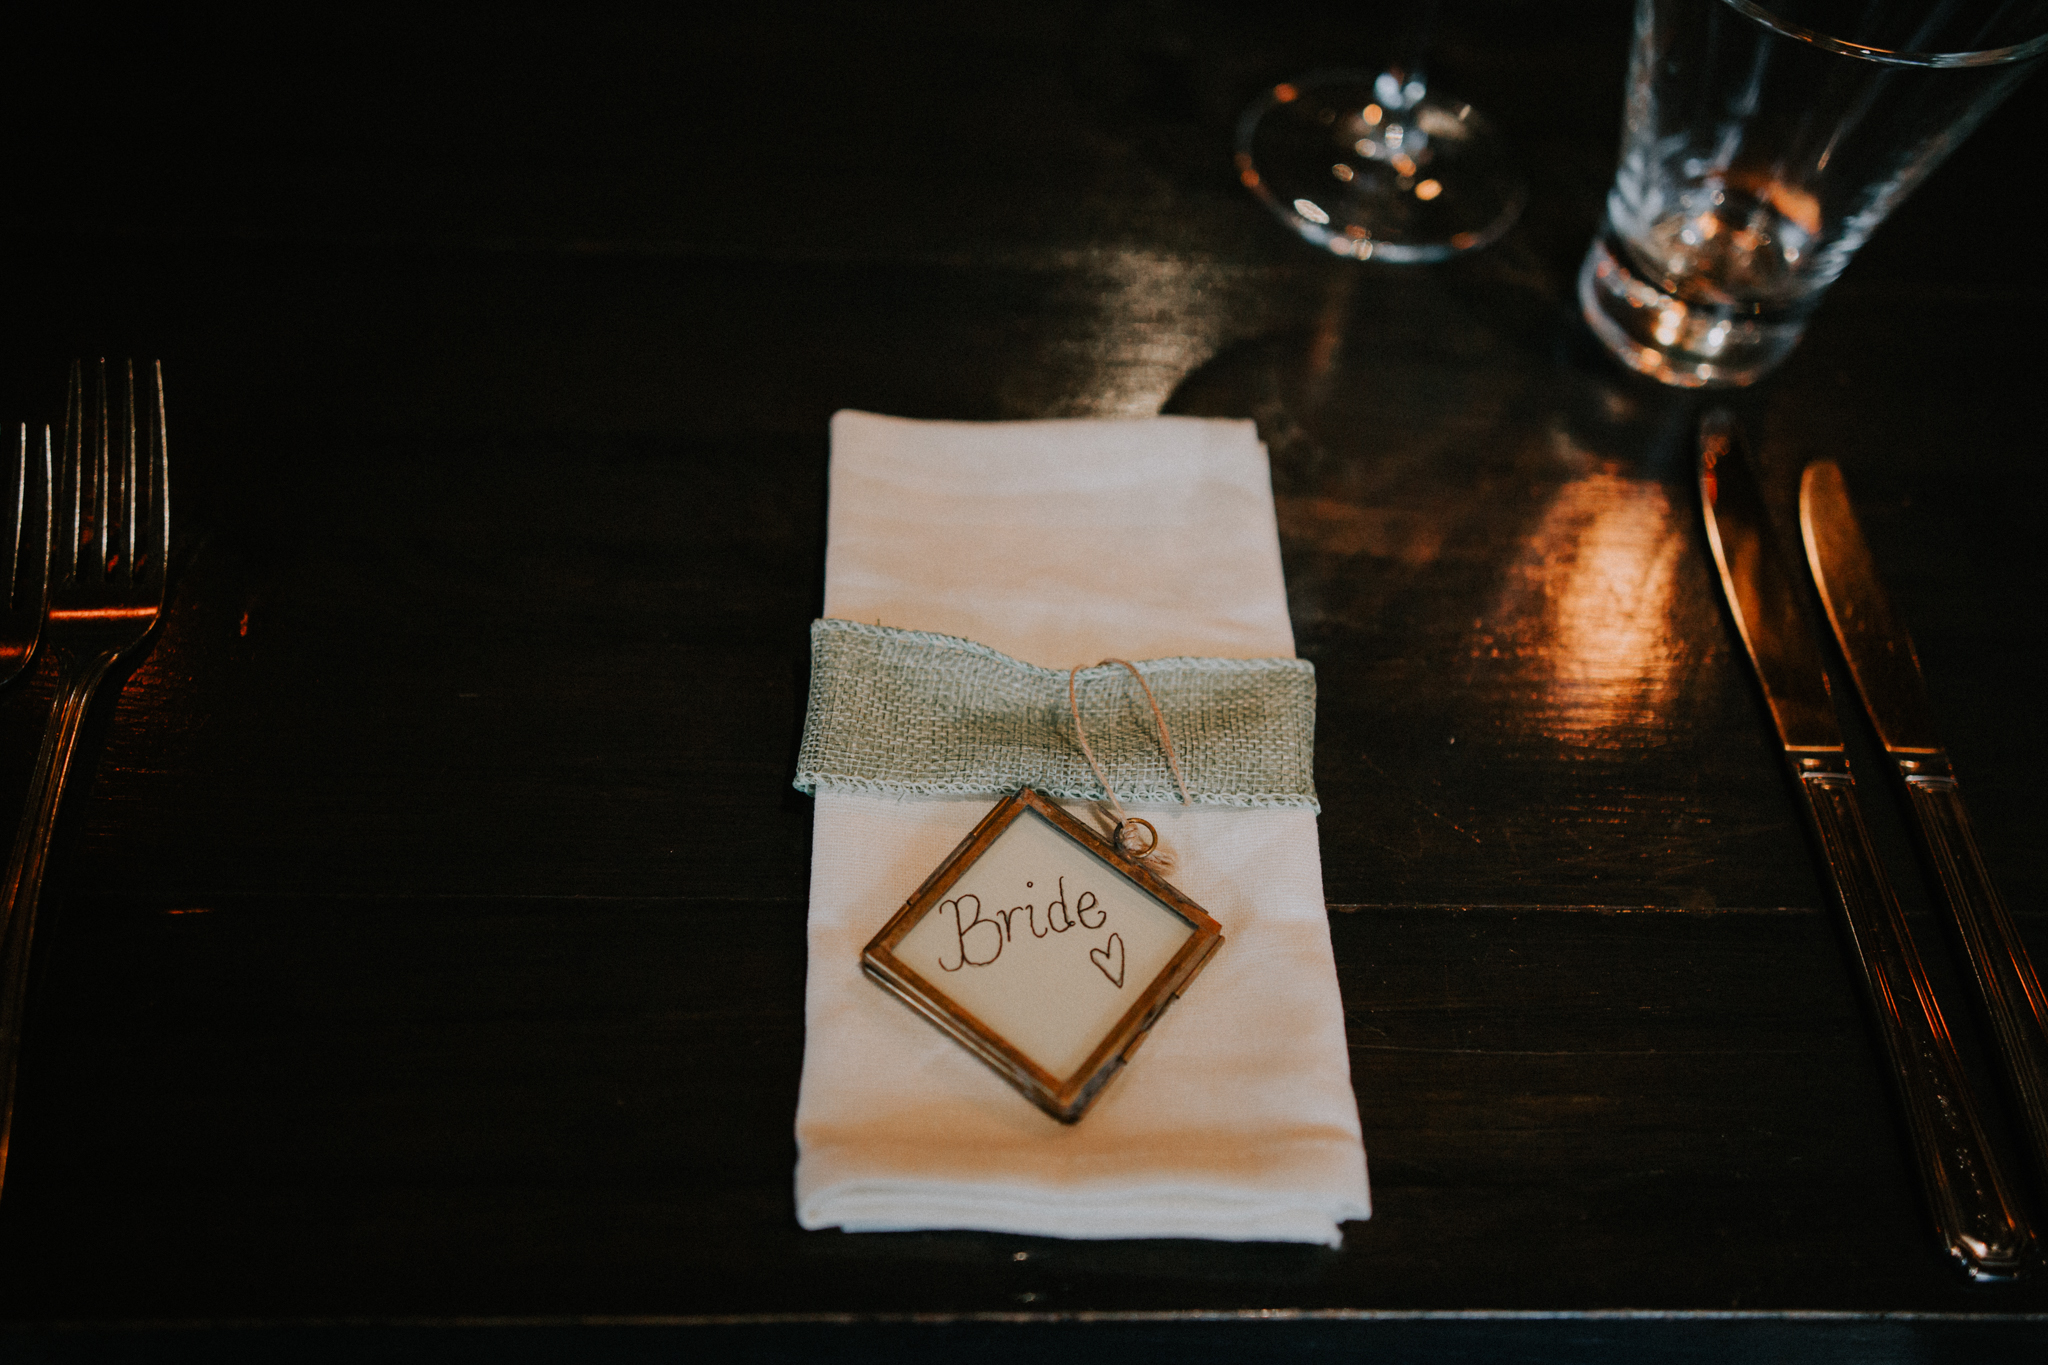 The bride's rustic table name at the Bothy